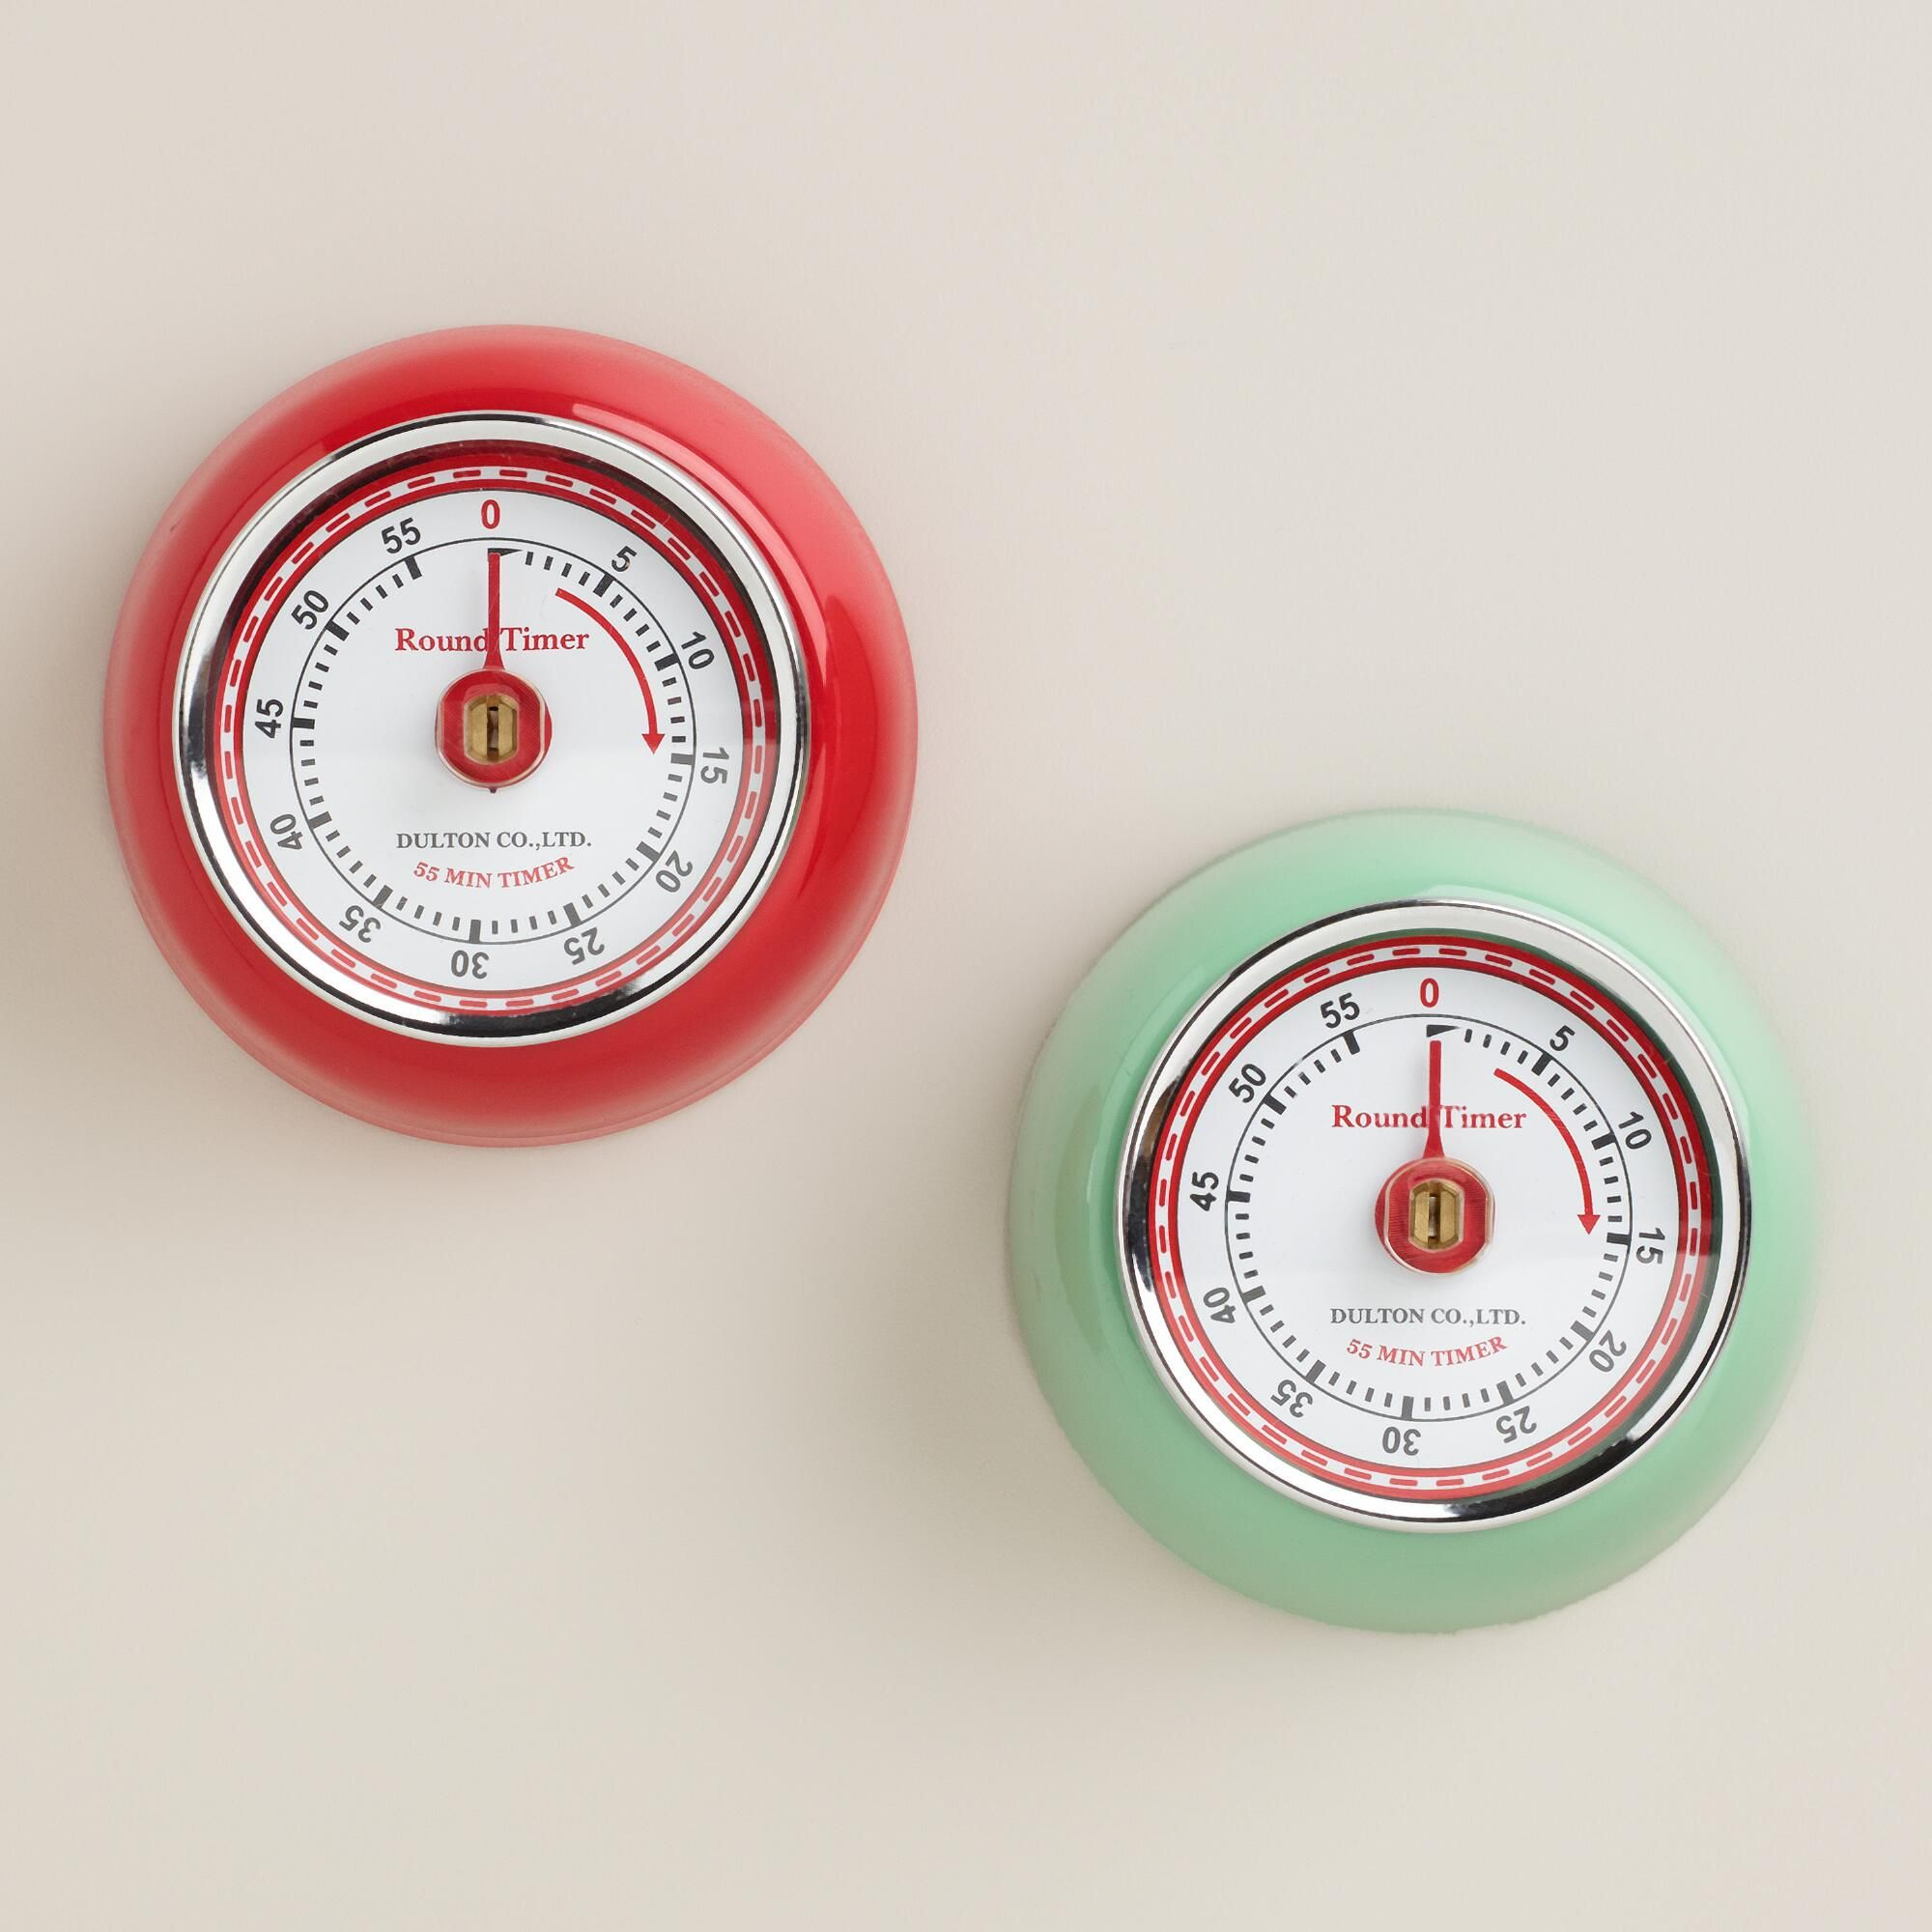 Our Retro Magnetic Timer Sticks To Any Metal Surface At Any Angle